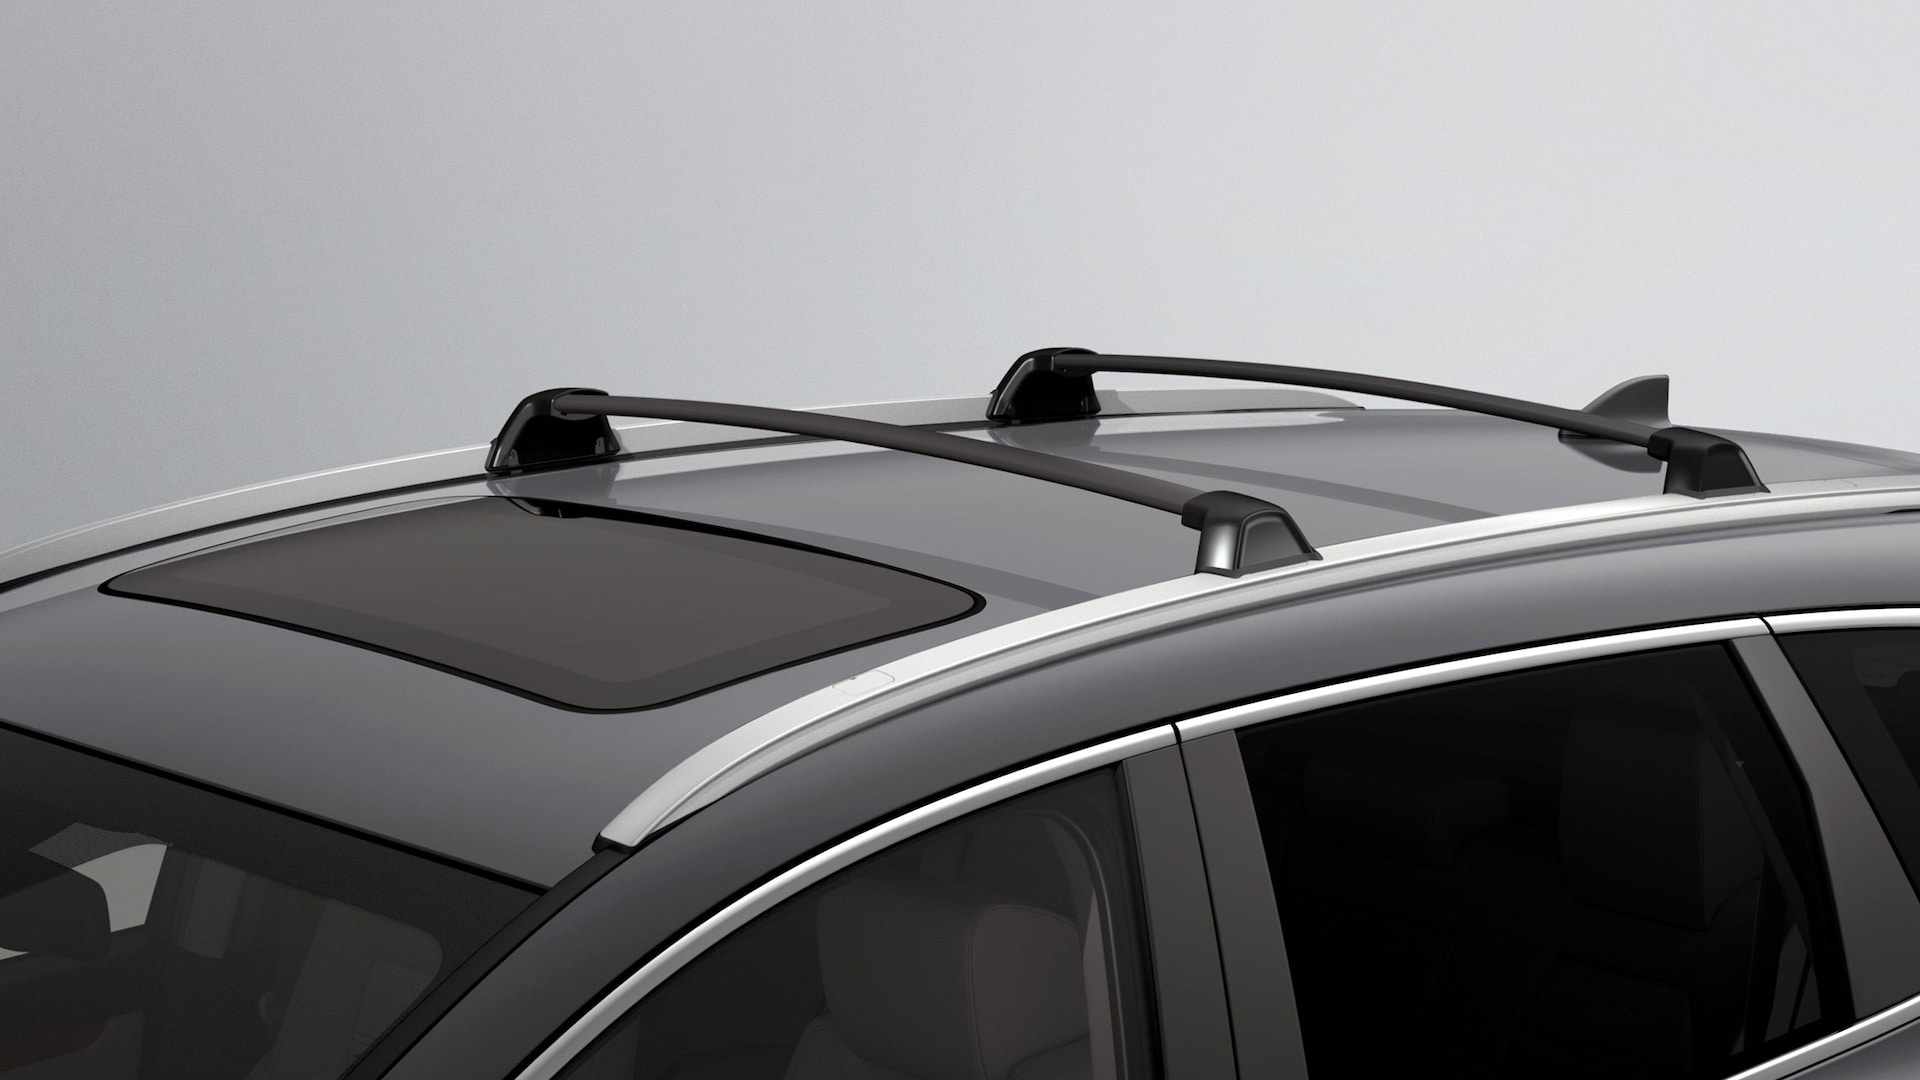 Accessory roof rails and crossbars detail on the 2021 Honda CR-V in Sonic Gray Pearl.